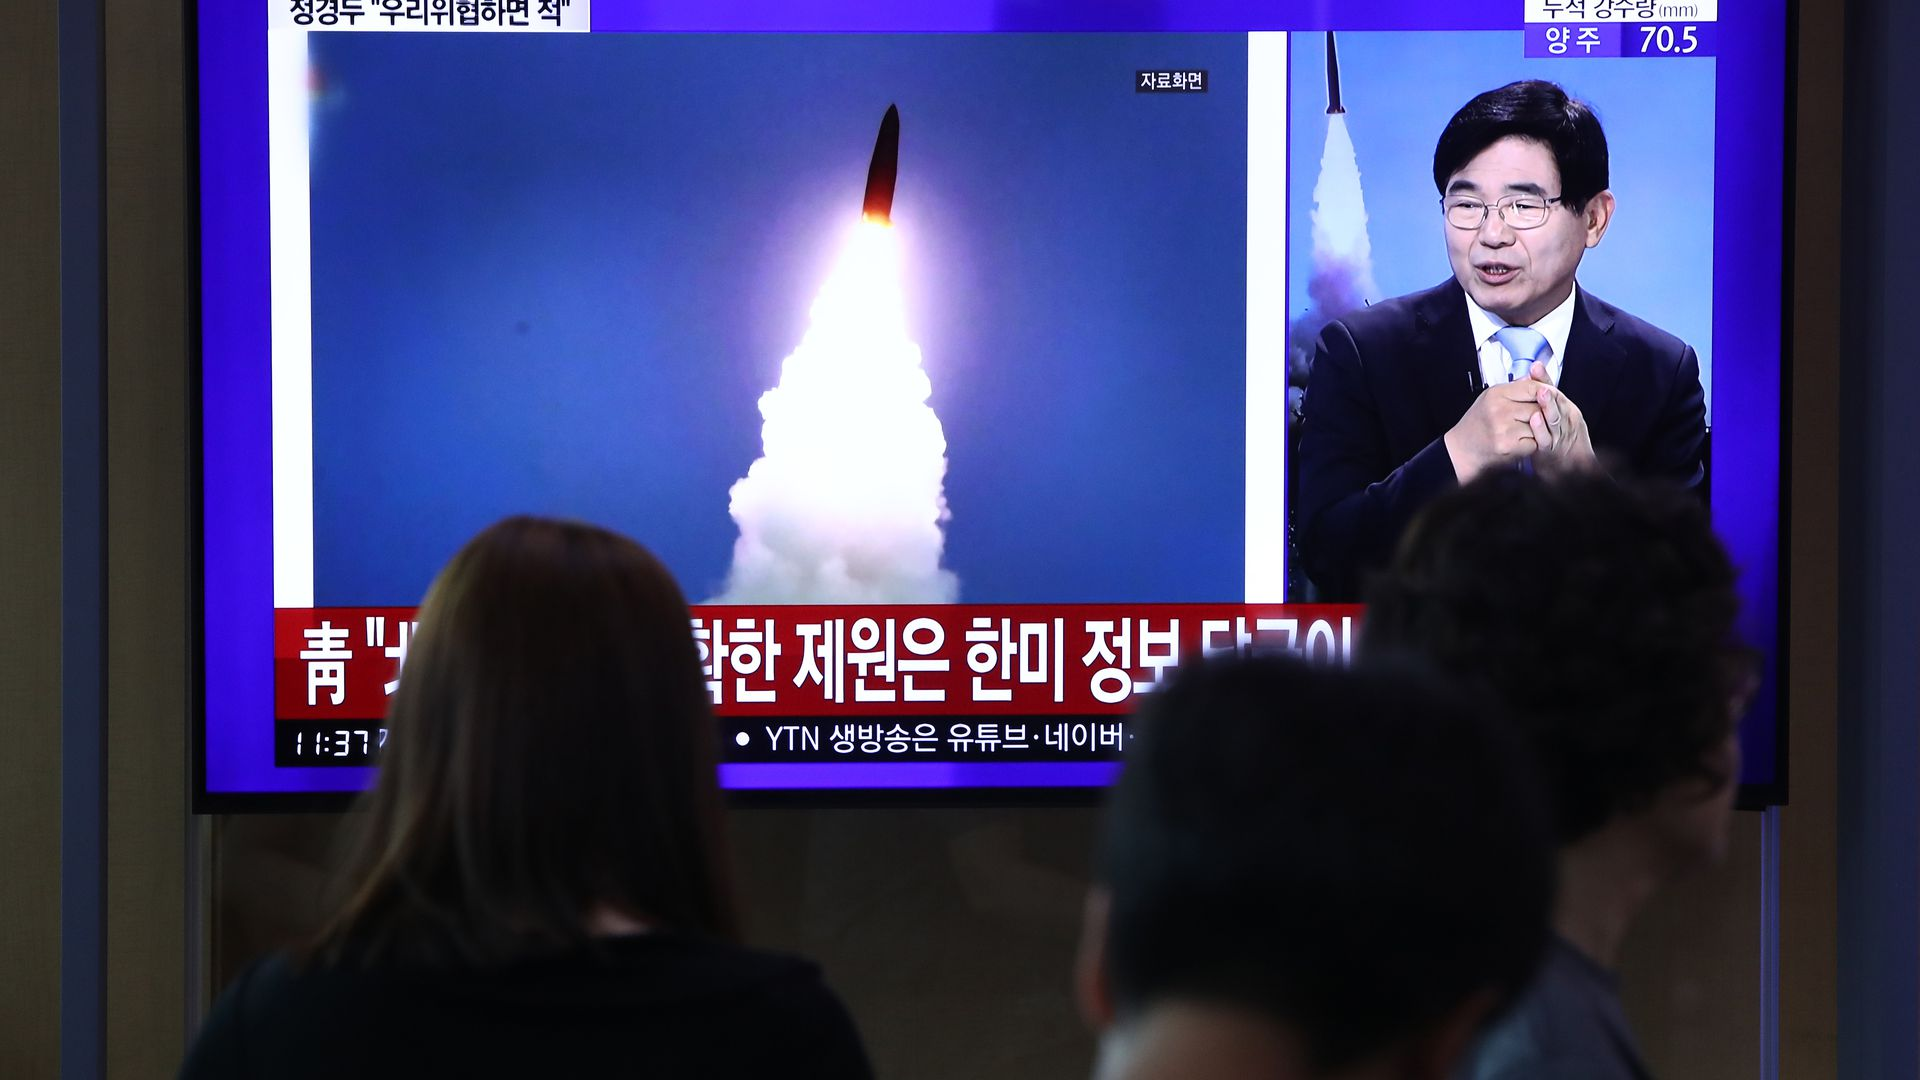 Report: North Korea fires another 2 projectiles - Axios